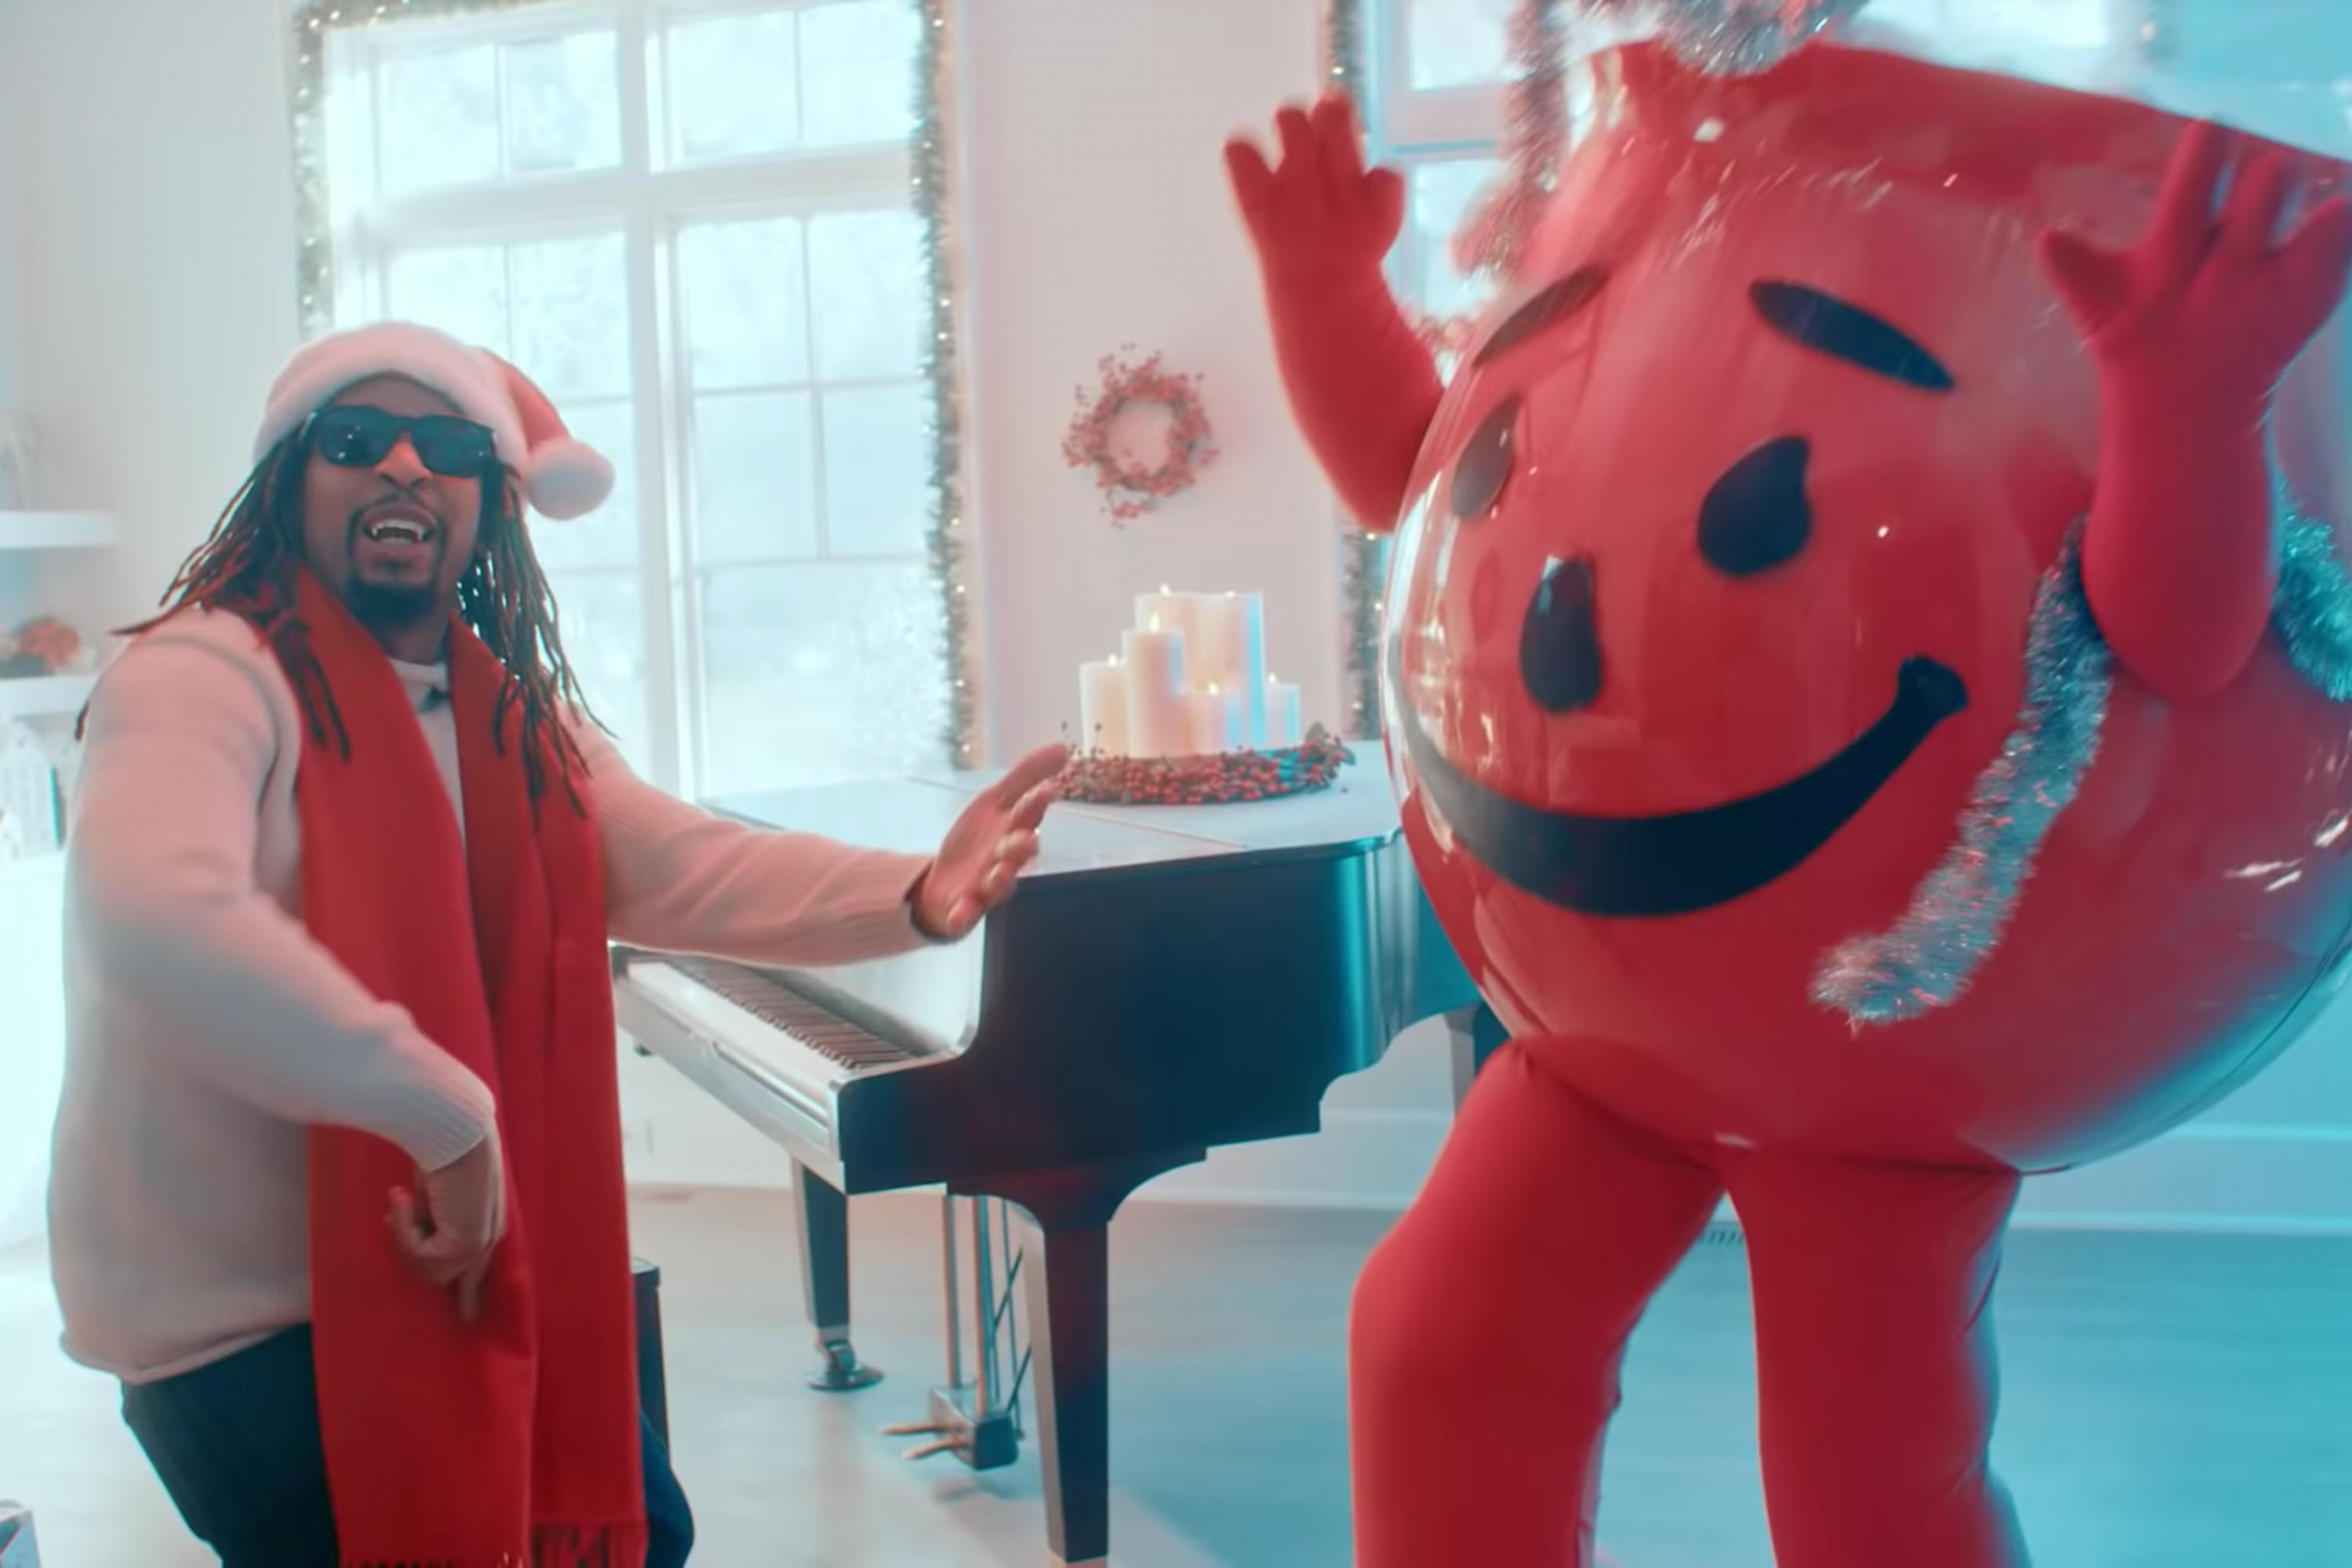 Lil Jon and the Kool-Aid Man bust walls in a holiday rap duet